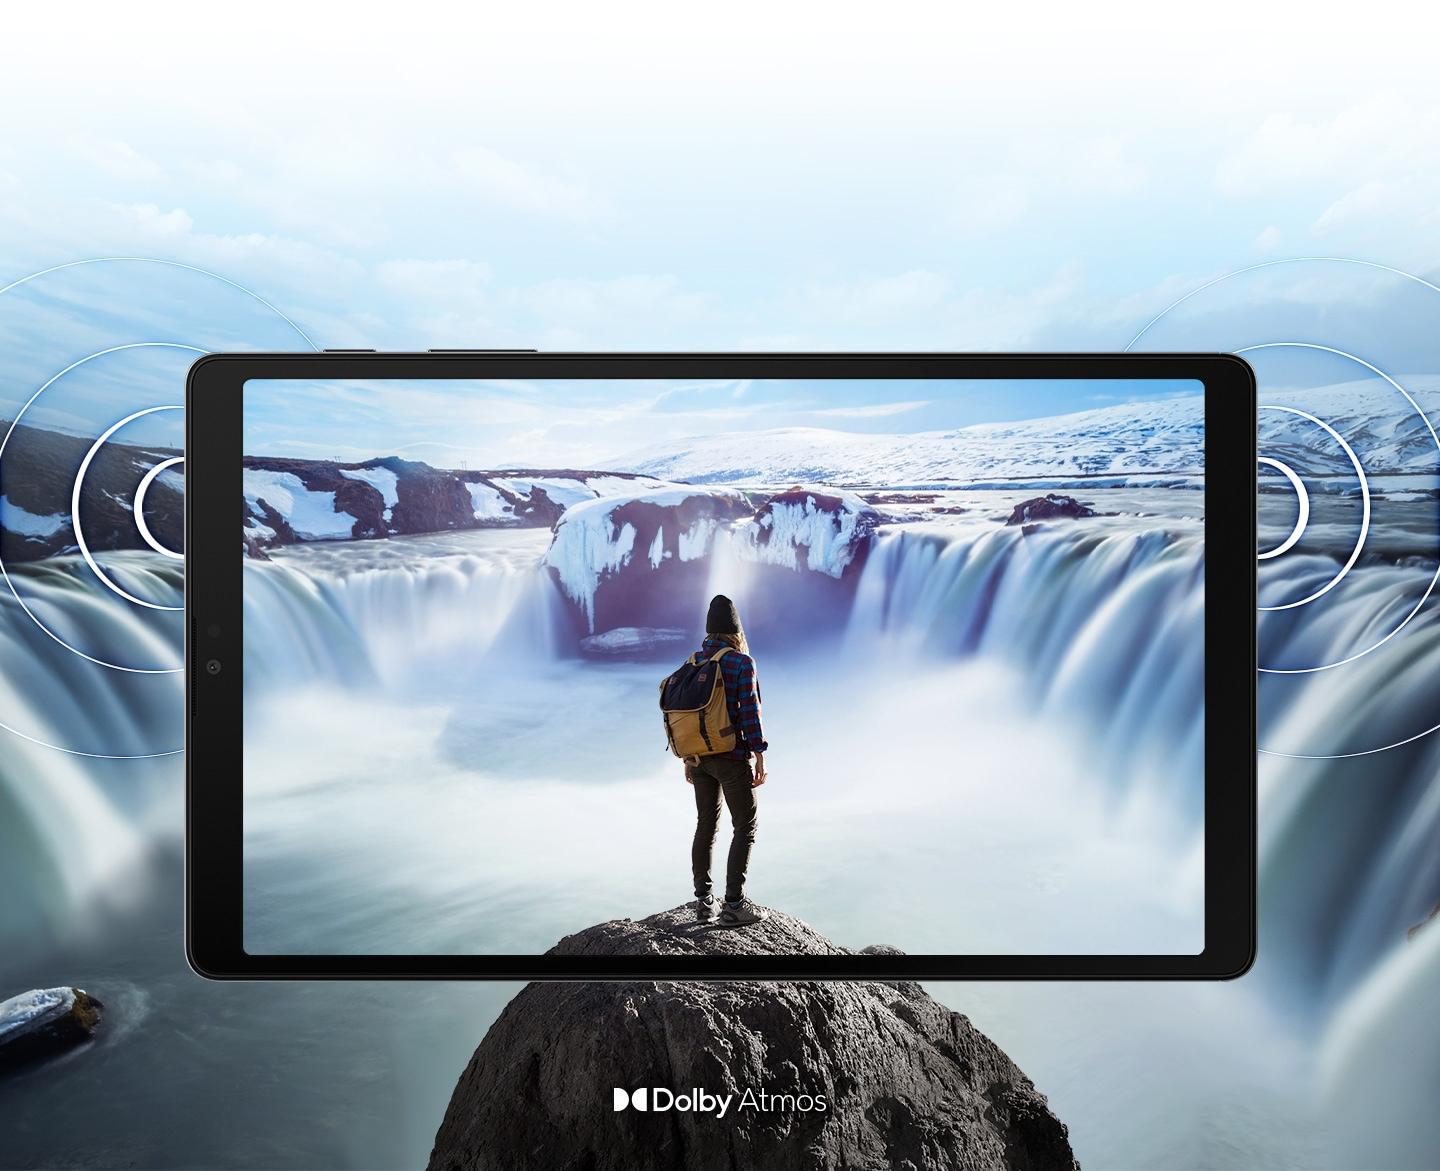 Galaxy A7 Lite seen from the front with an image of a person standing on a rock in front of steaming waterfalls on either side onscreen. The image expands past the edges of the tablet to show the expansiveness of the display. Rings come out from the sides to demonstrate the location of the dual speakers and the immersive sound of Dolby Atmos.